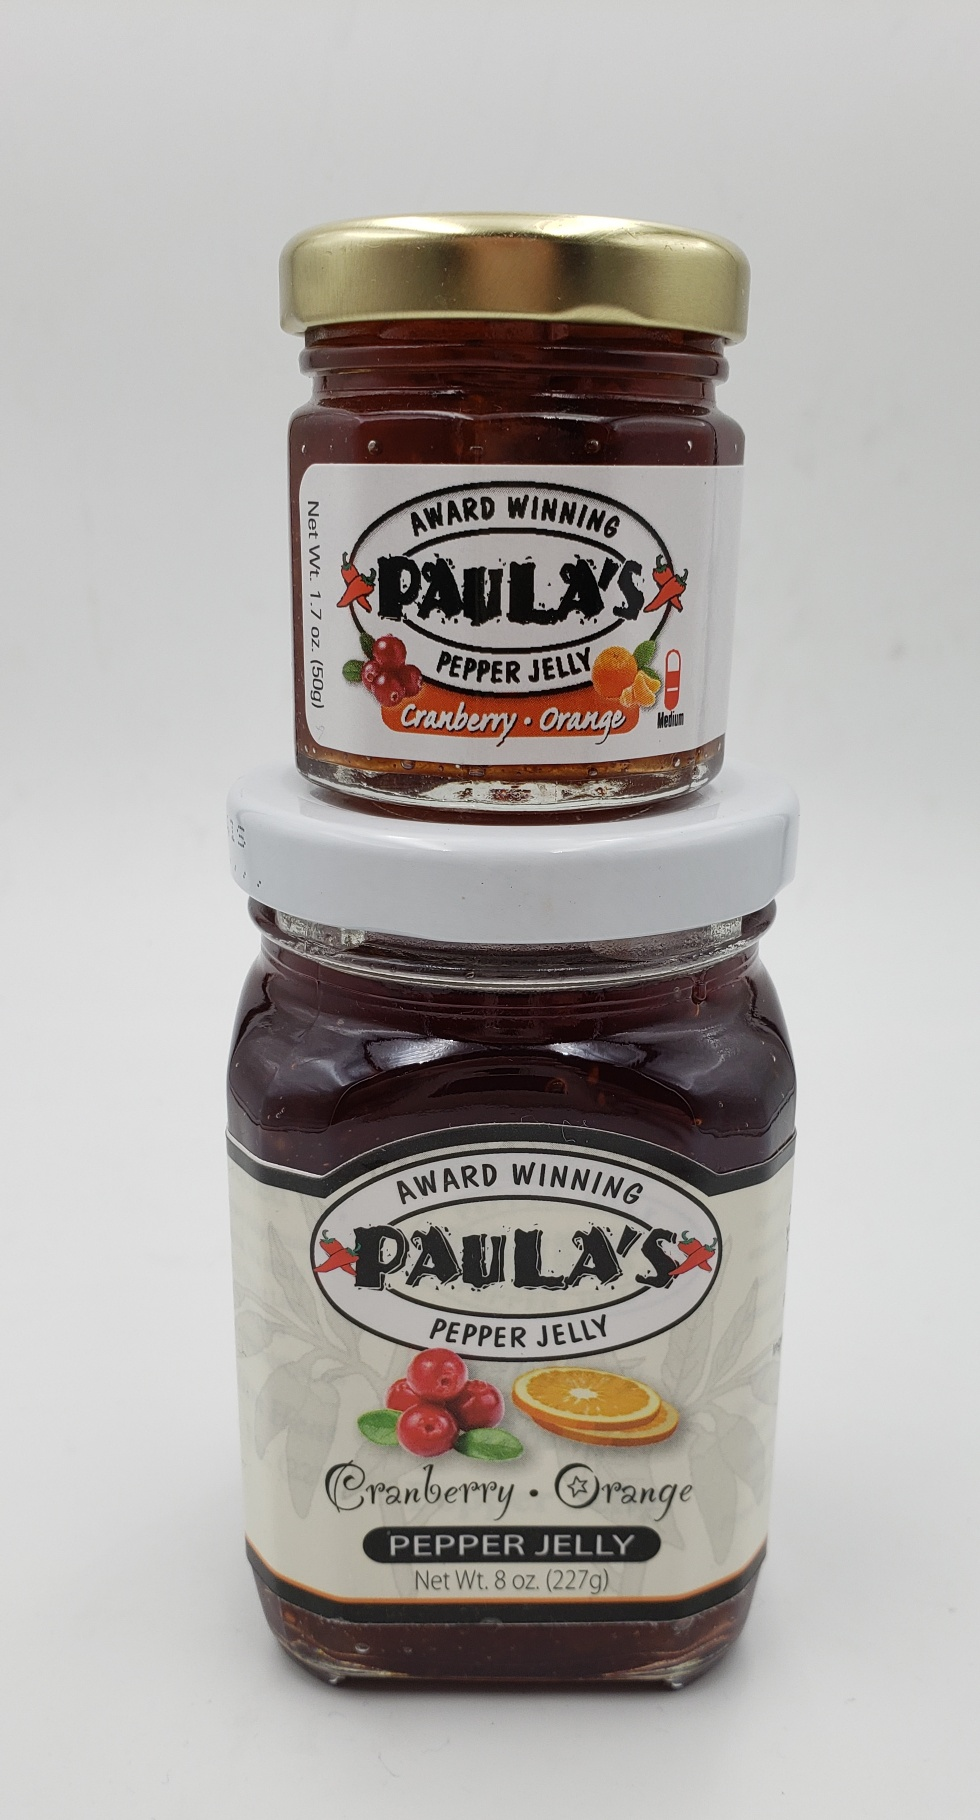 1.7 oz. orange and cranberry pepper jelly jar on top of the 8 oz. Paula's Pepper Jelly jar label out.